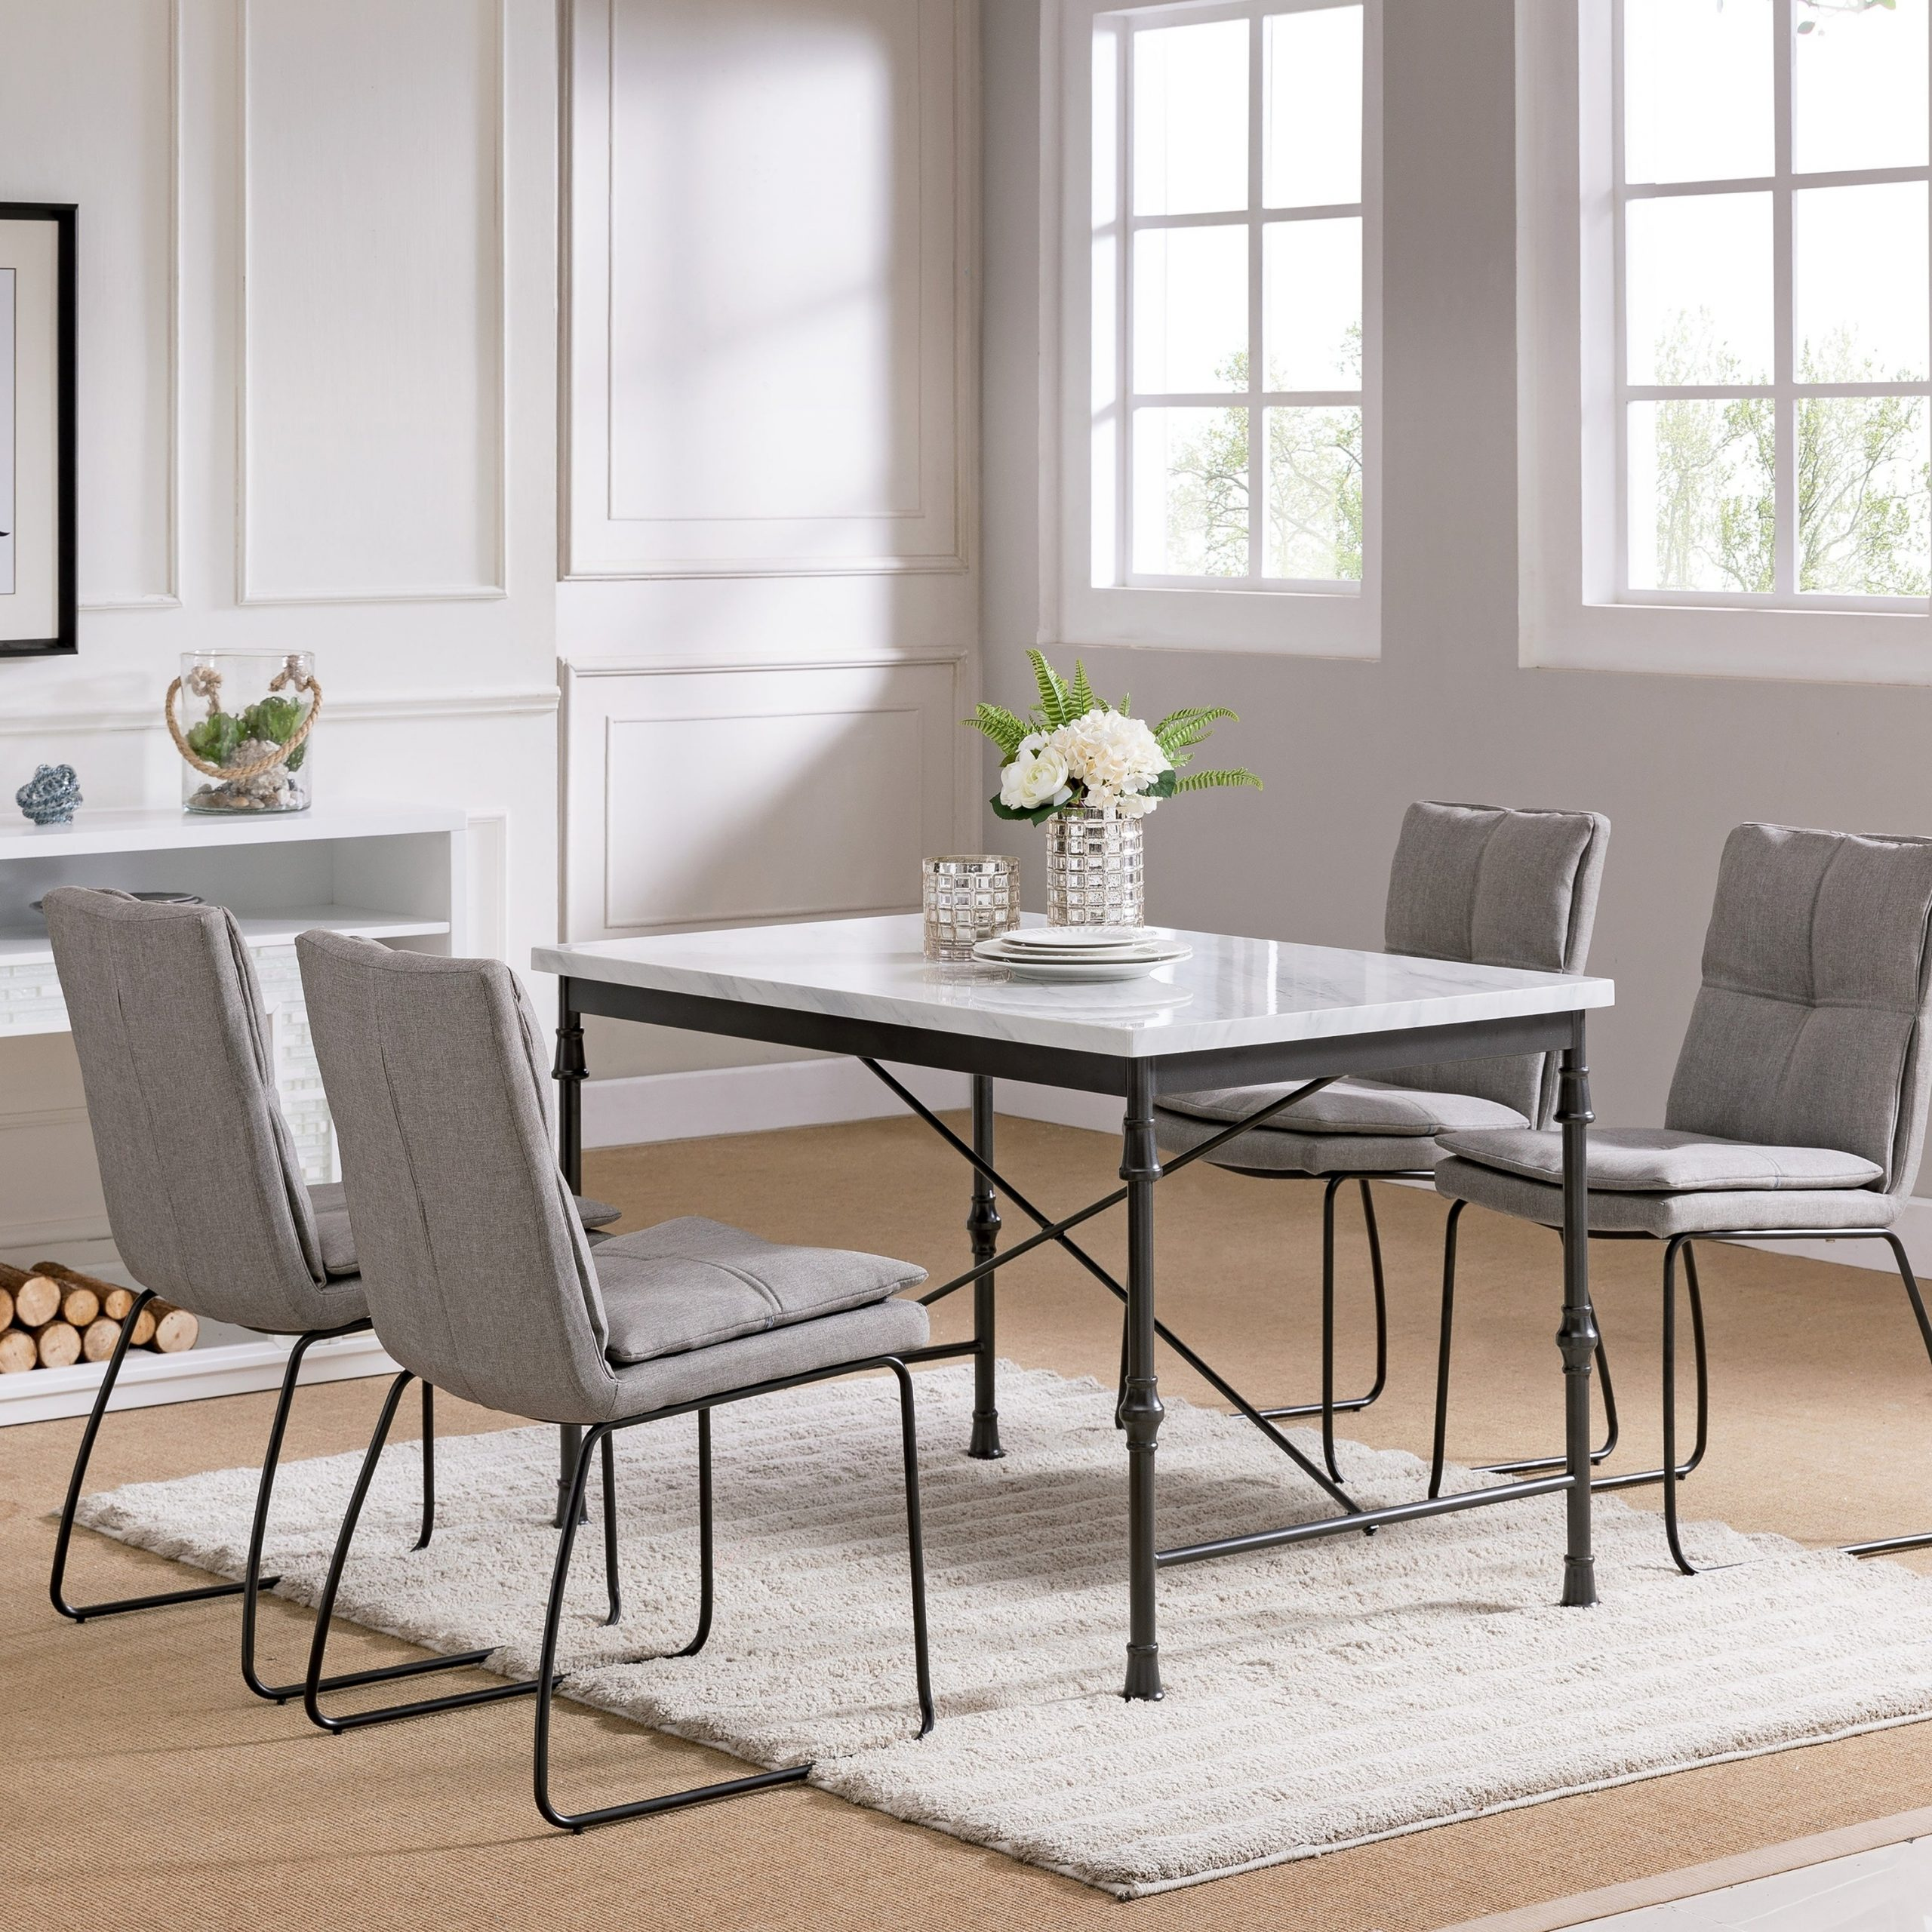 Most Popular Carbon Loft Ivan Faux Marble Dining Table Regarding Faux Marble Finish Metal Contemporary Dining Tables (View 15 of 25)